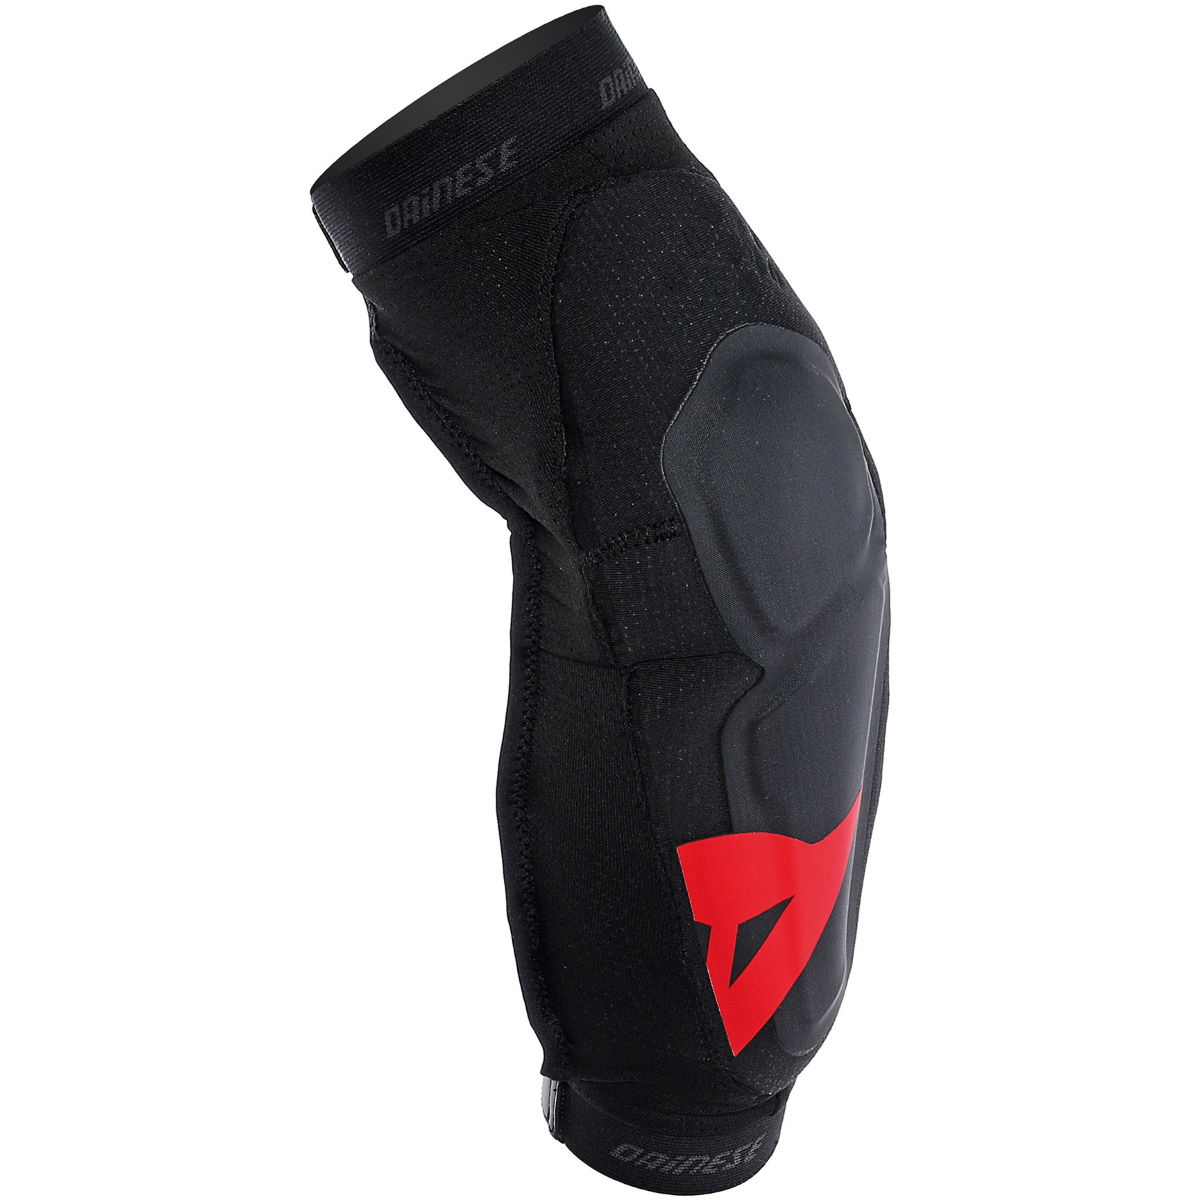 Protections de coude Dainese Hybrid - M Noir Protections